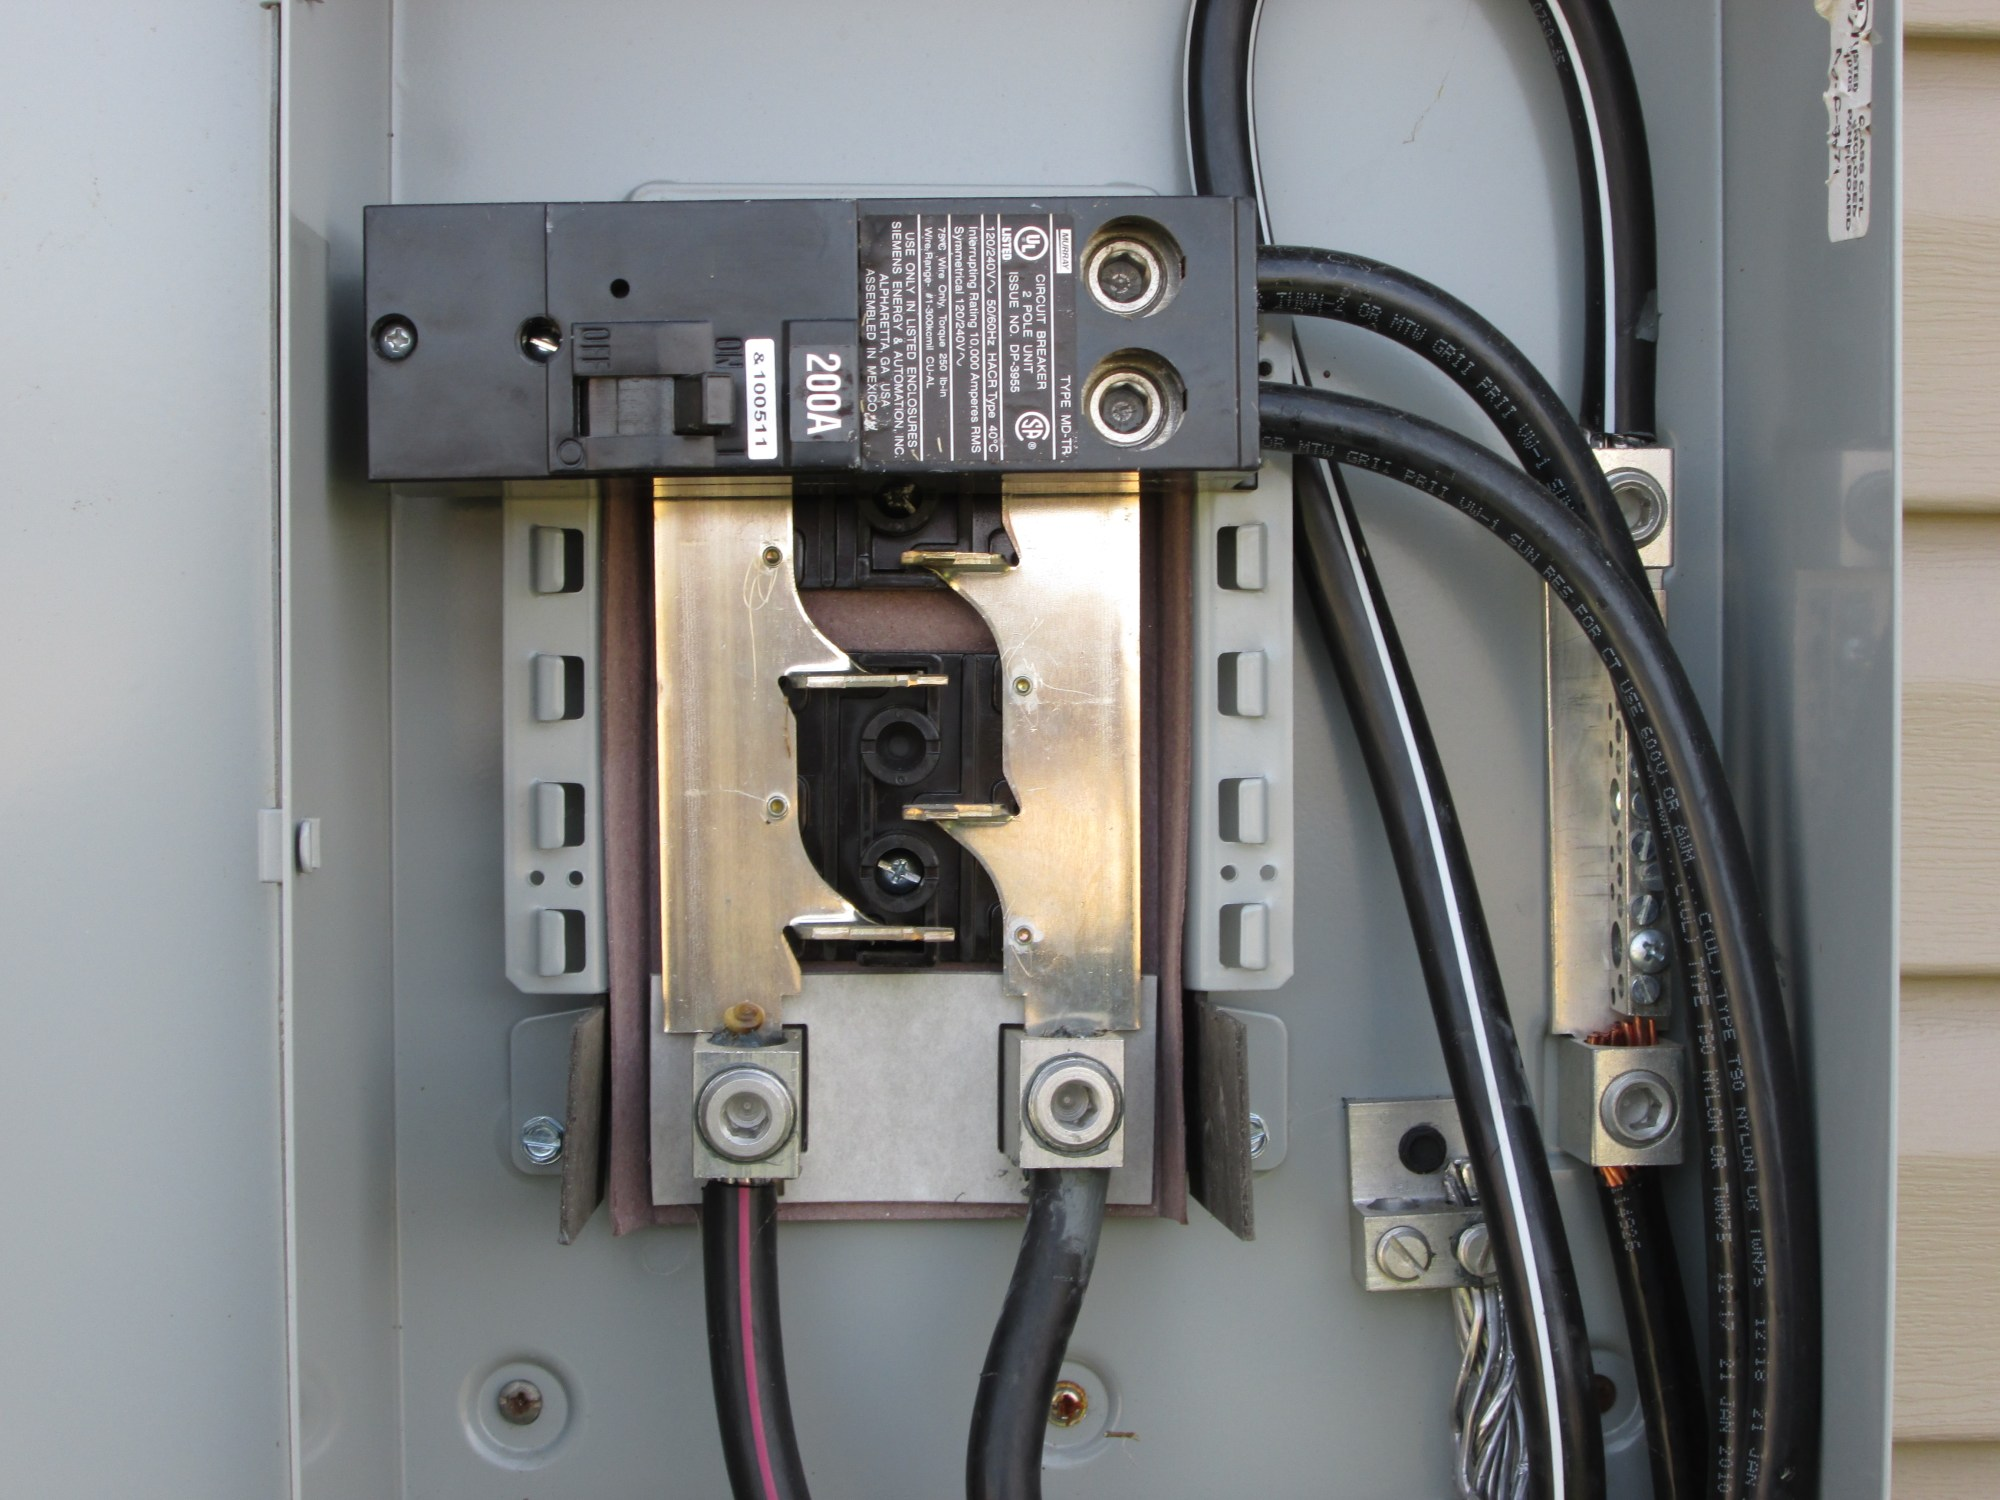 hight resolution of 200 amp meter panel wiring diagram how to run power from 200 amp service disconnect to